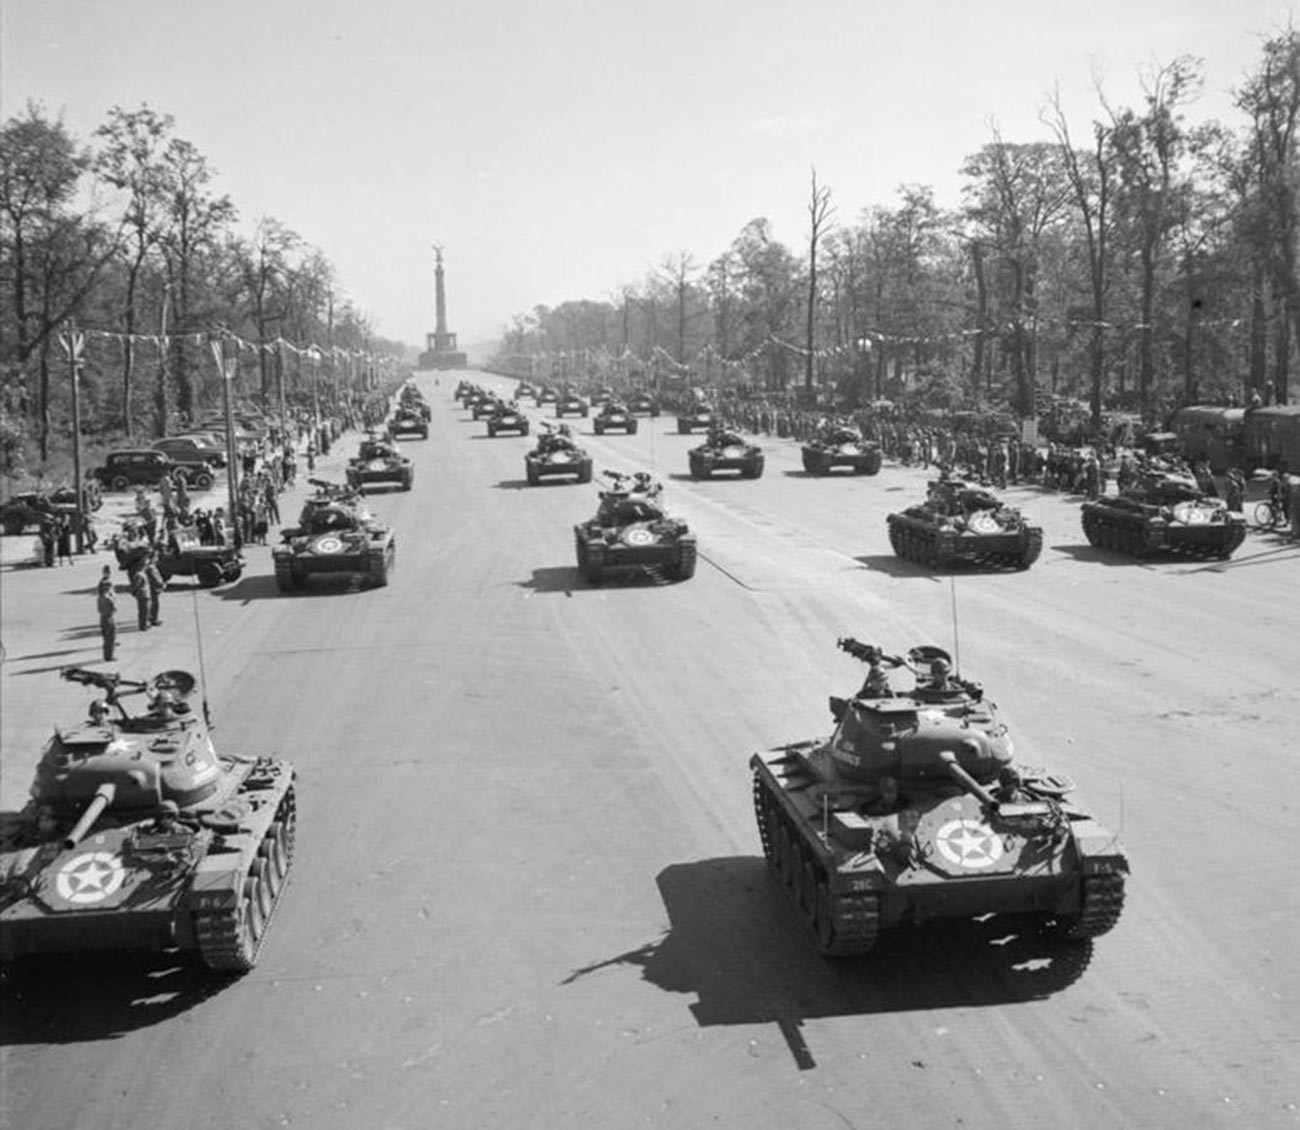 American M24 'Chaffee' Light Tanks during the parade, September 7.